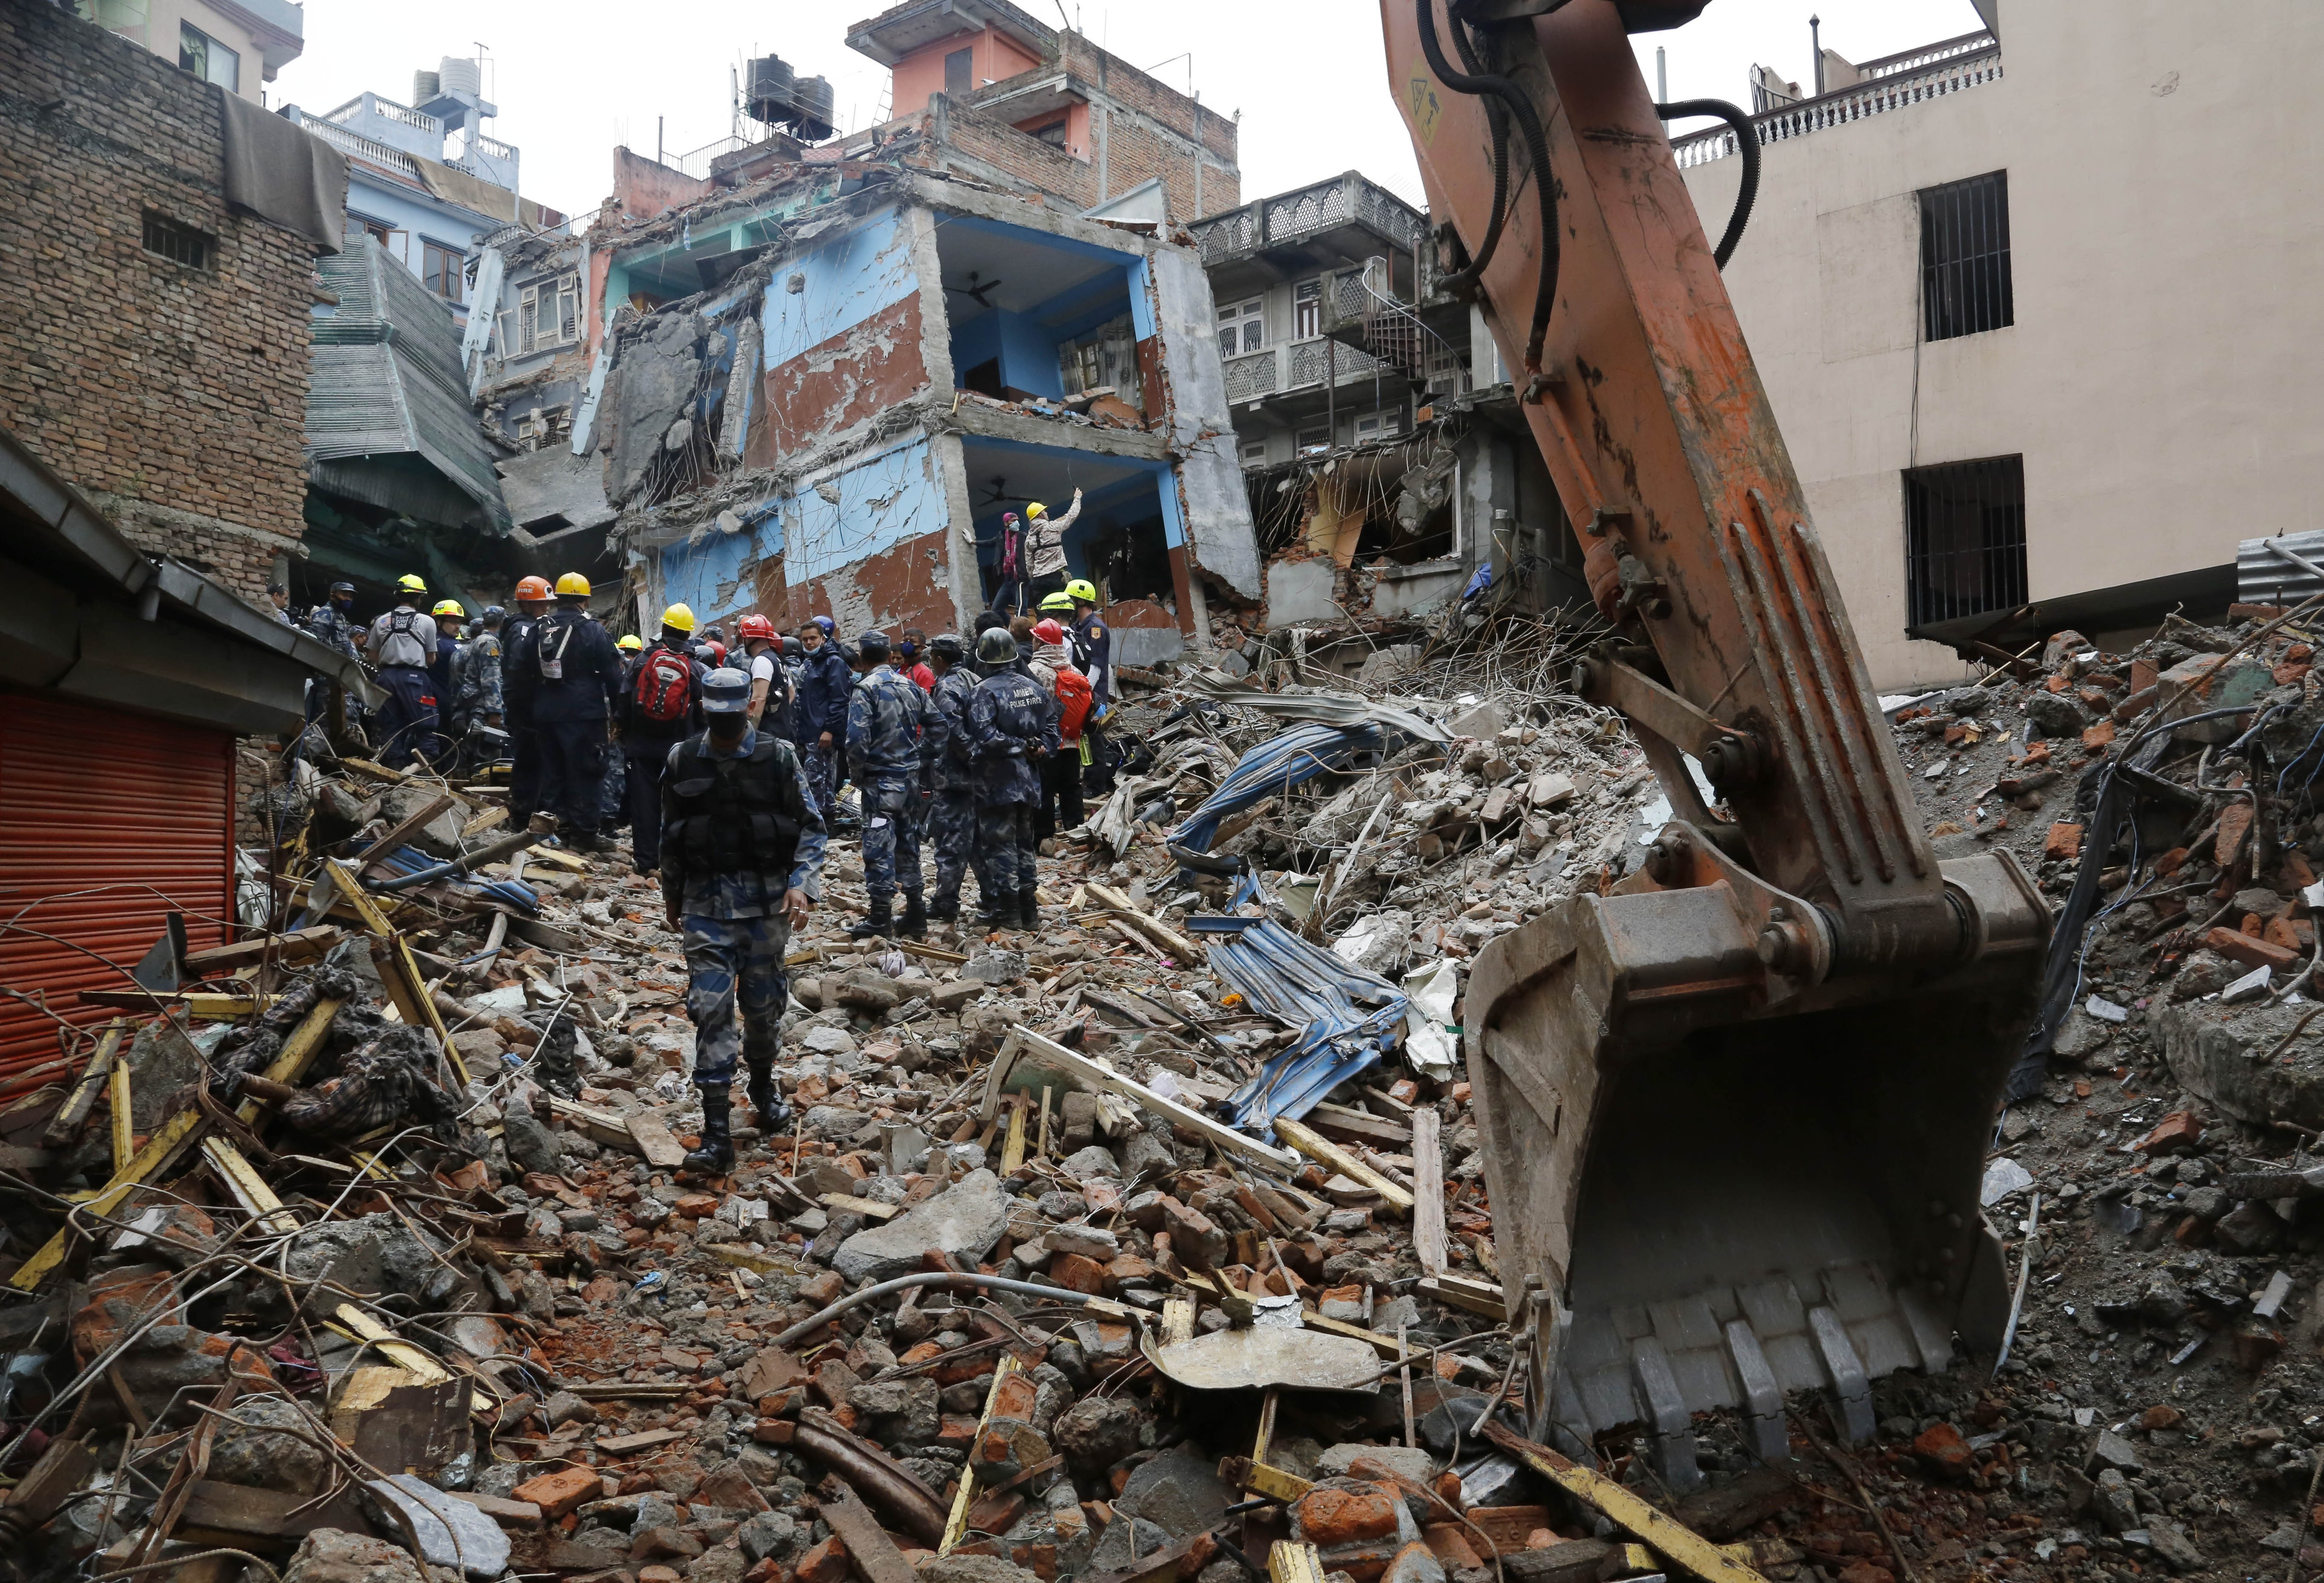 Nepal policemen cordon off the area as they and US rescue workers prepare to  pull out Pemba Tamang, a teenage boy from the rubble of a building five days after the earthquake in Kathmandu, Nepal, Thursday, April 30, 2015. Crowds cheered Thursday as Tamang was pulled, dazed and dusty, from the wreckage of a seven-story Kathmandu building that collapsed around him five days ago when an enormous earthquake shook Nepal. (AP Photo / Manish Swarup)